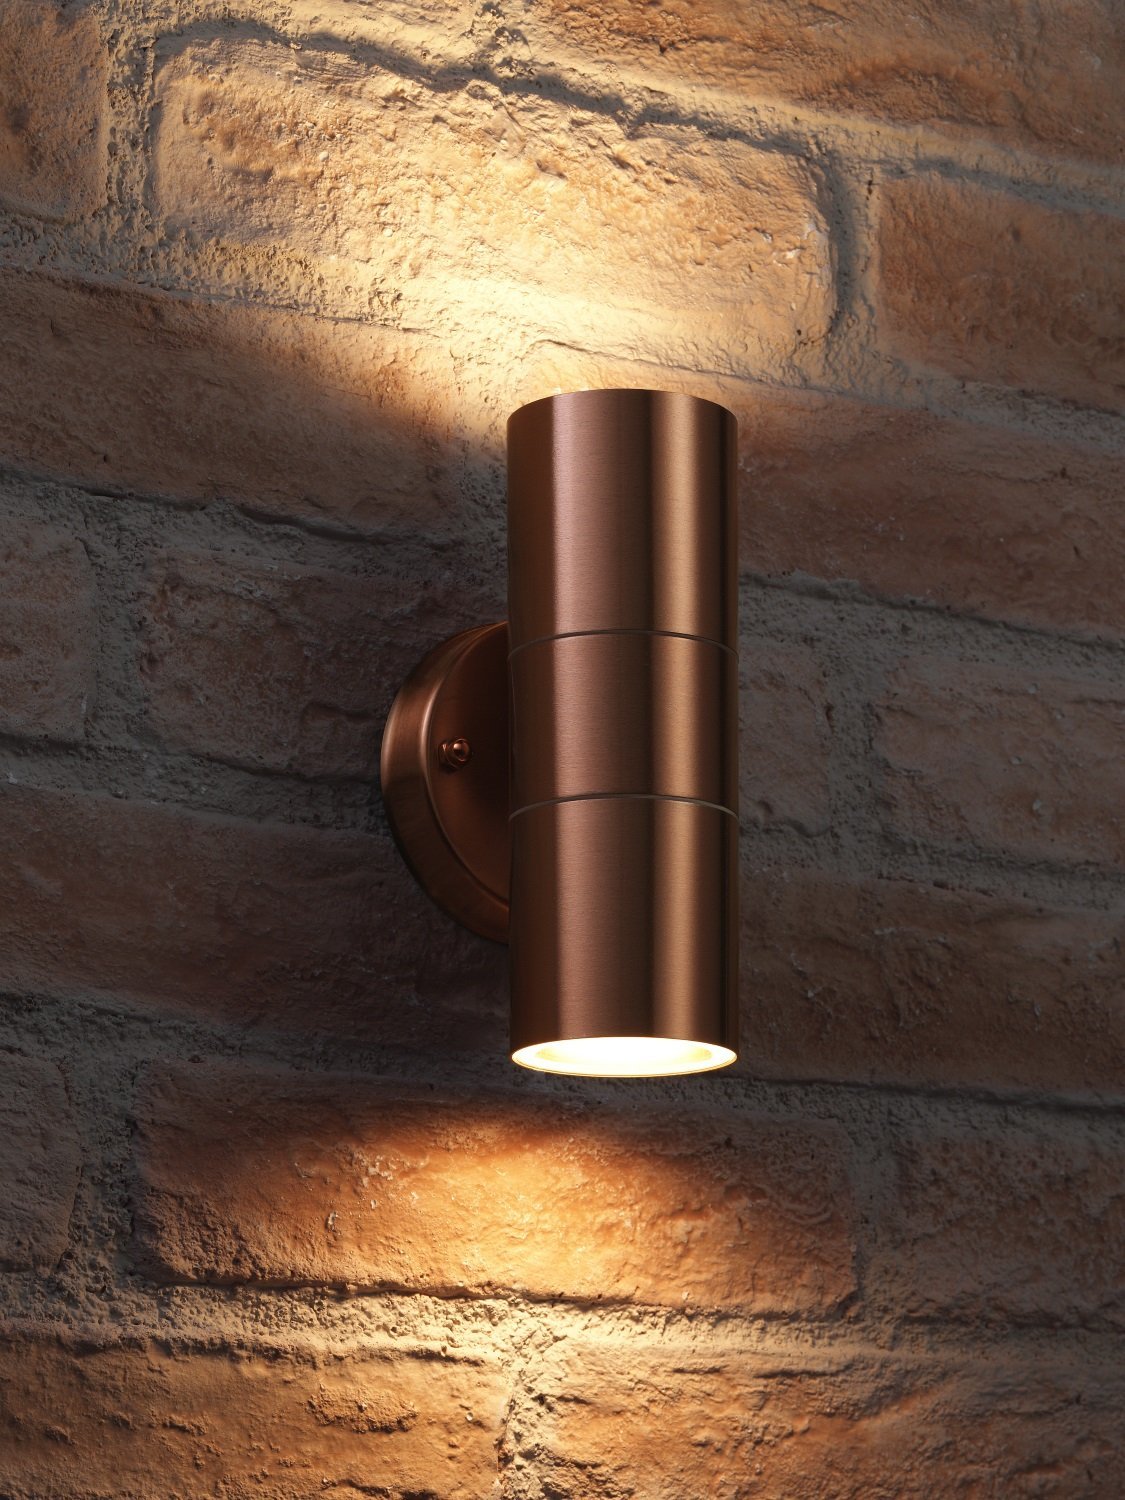 Auraglow Stainless Steel Indoor/Outdoor Double up & Down Wall Light - Warm White LED Bulbs Included - Copper Finish [Energy Class A+]